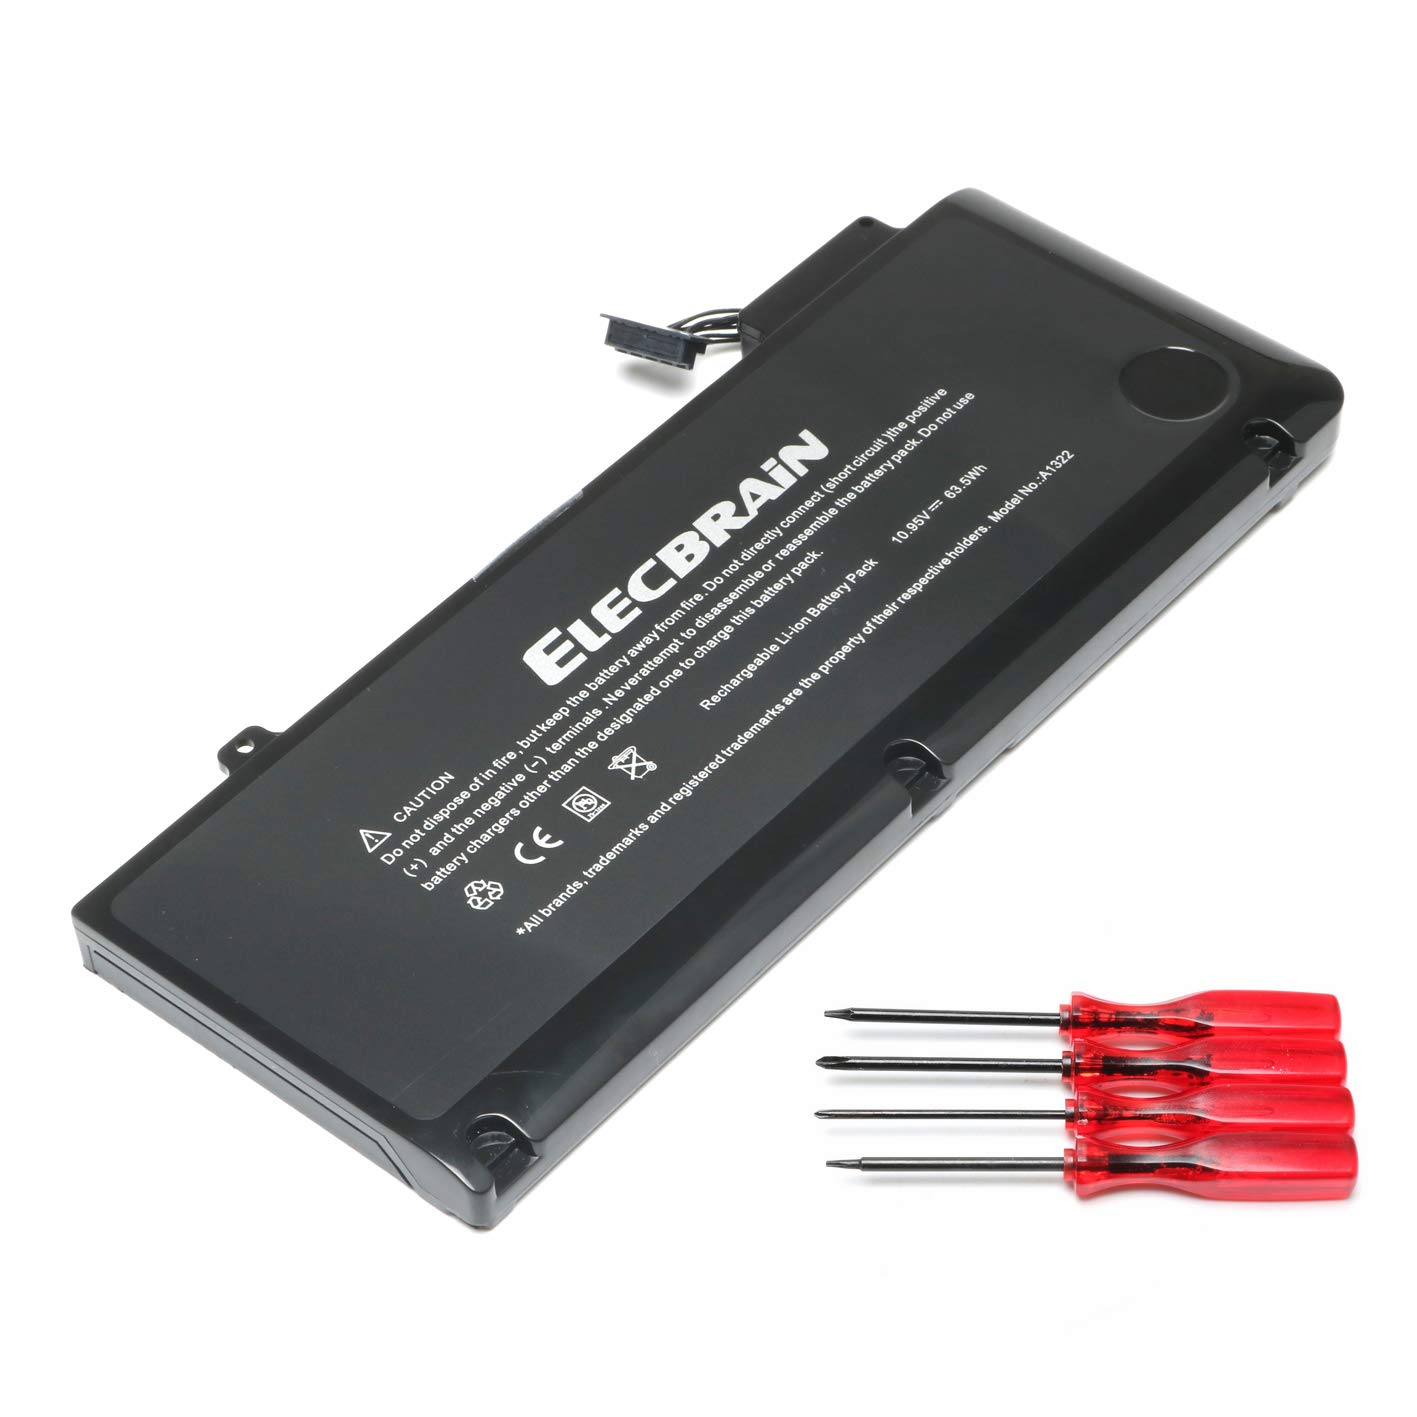 New A1322 Battery for MacBook Pro 13 inch A1278 A1322 [2009 2010 2011 Version] Battery 020-6547-A 661-5229 661-5557 with Four Free Screwdrivers [10.95V 63.5mAh]